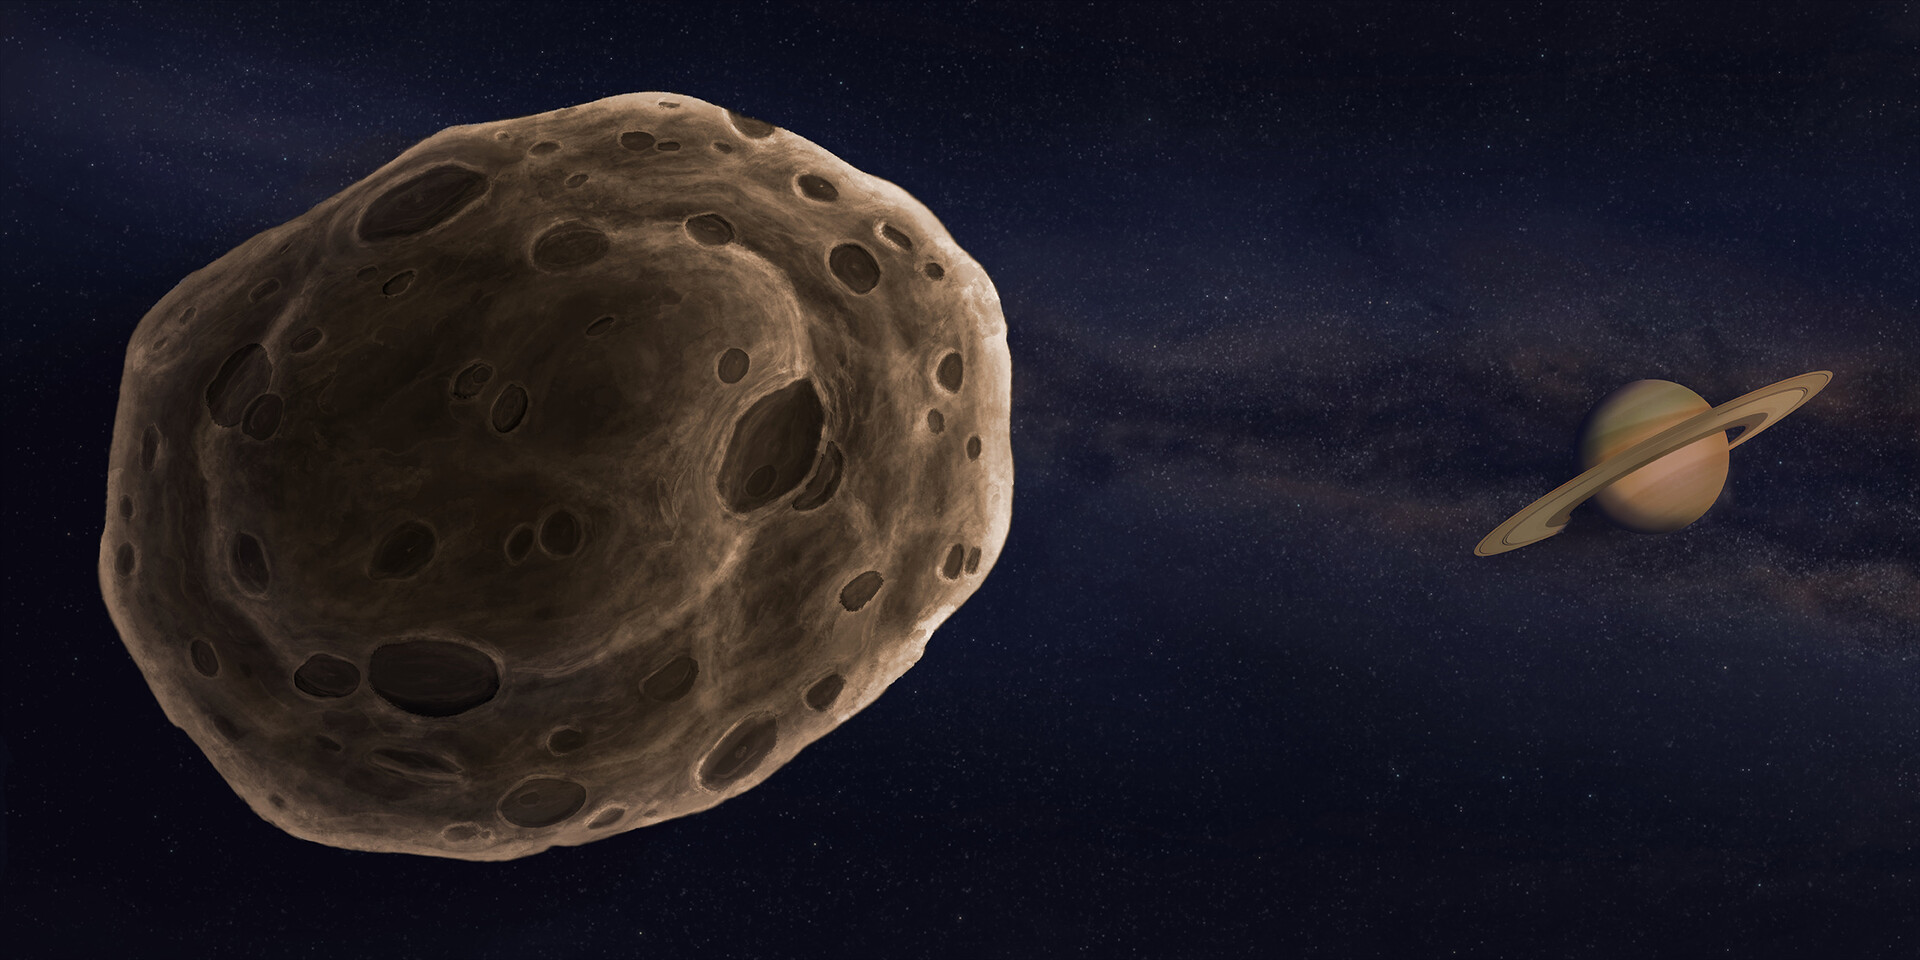 Part 2 - Meteoroid (or asteroid) passing near Saturn before heading to Earth.